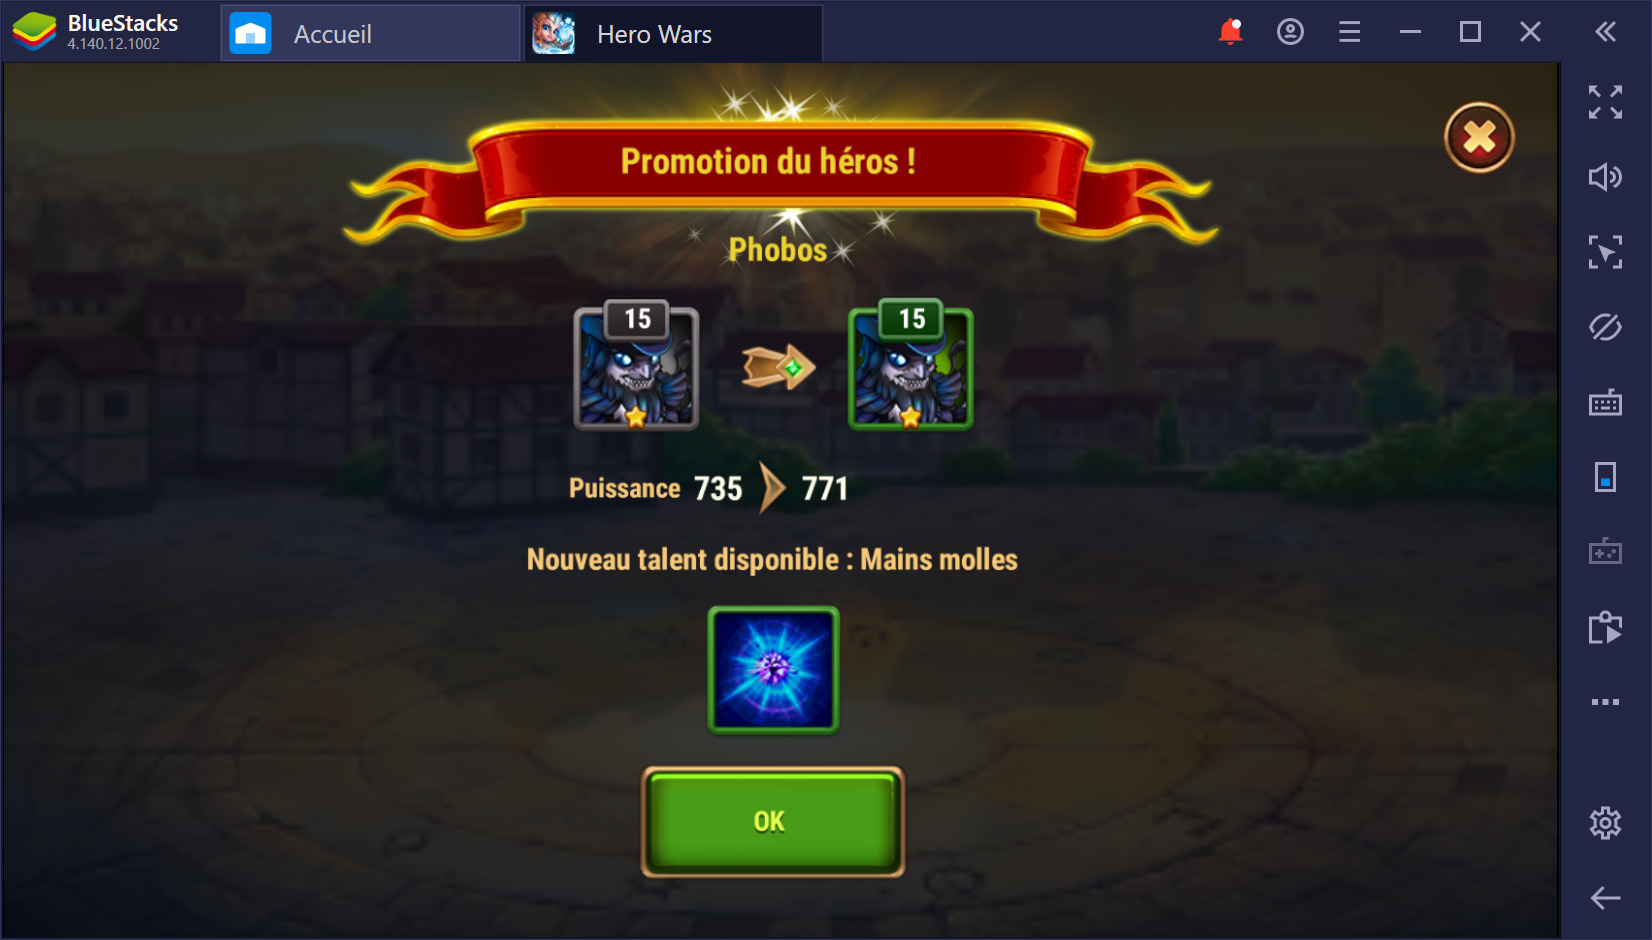 Guide BlueStacks pour Hero Wars sur PC